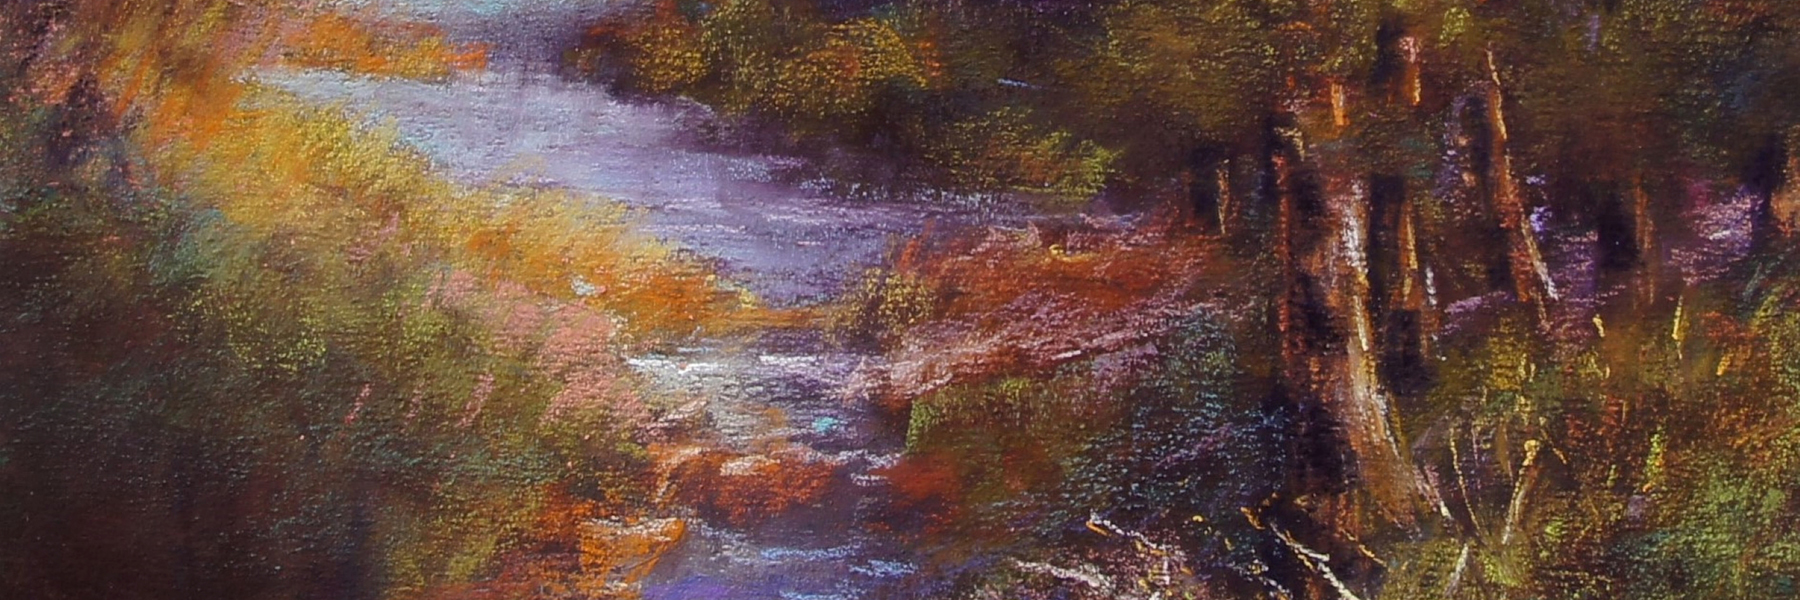 pastel drawing of nature scene